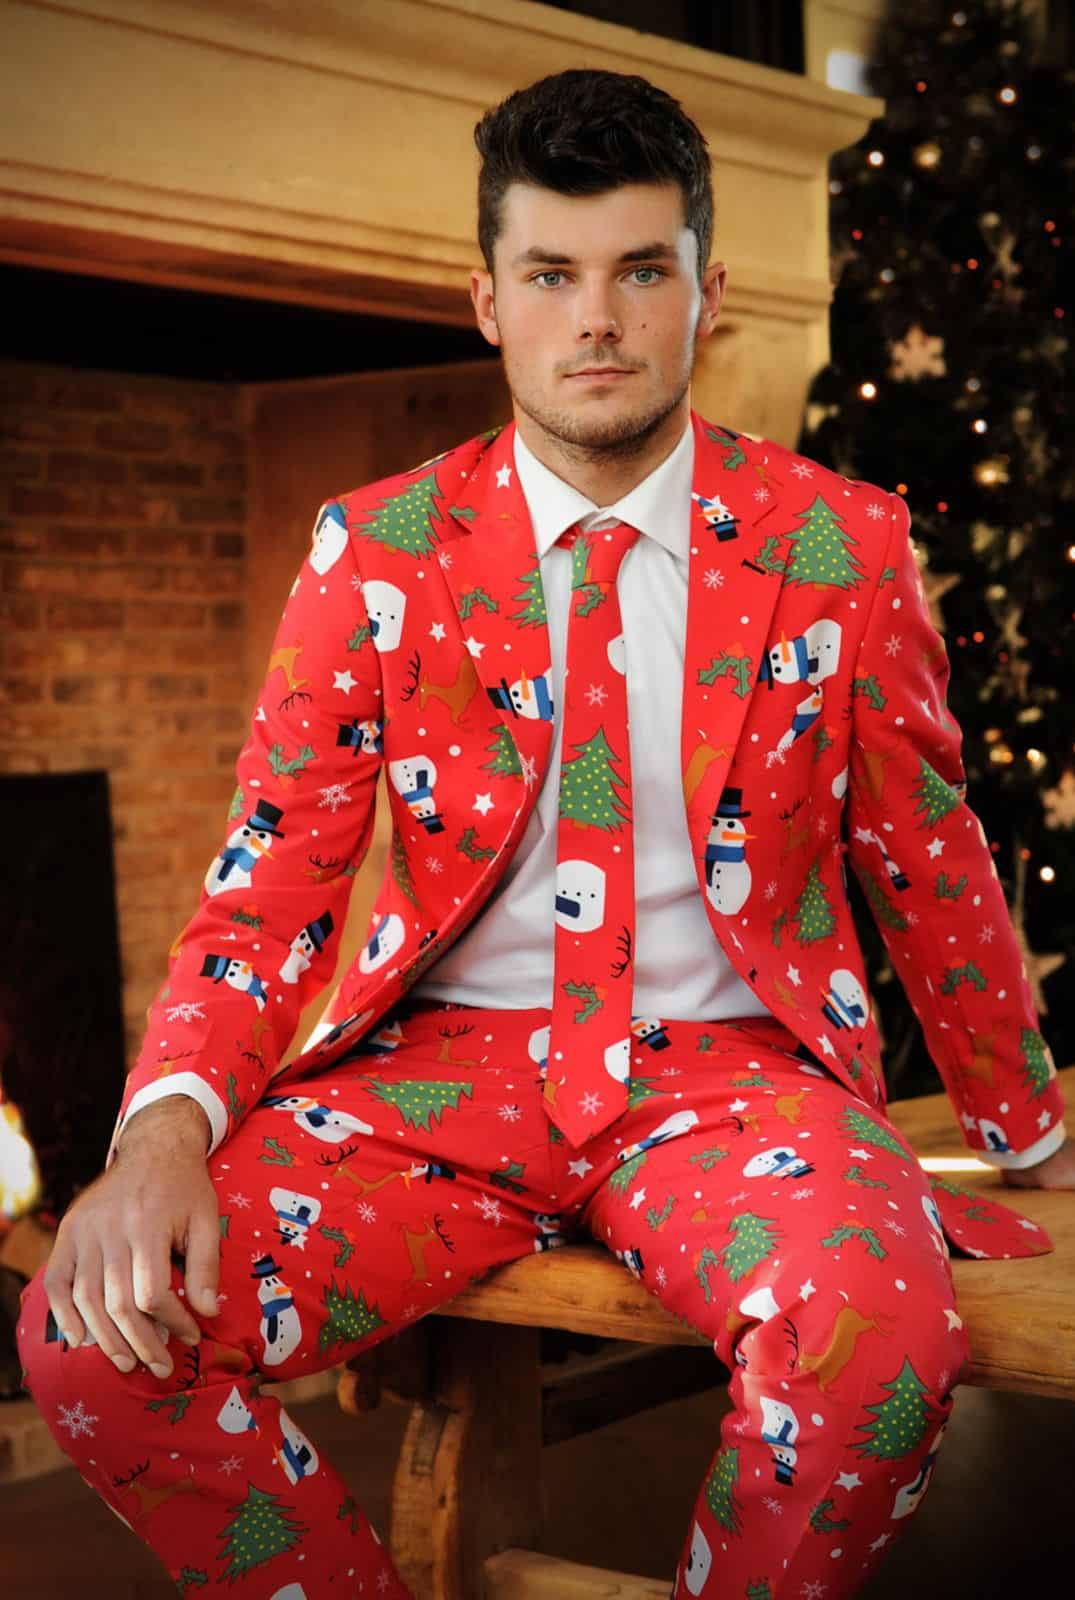 Christmas Sweater Suit.Suits Inspired By Ugly Christmas Sweaters Unfinished